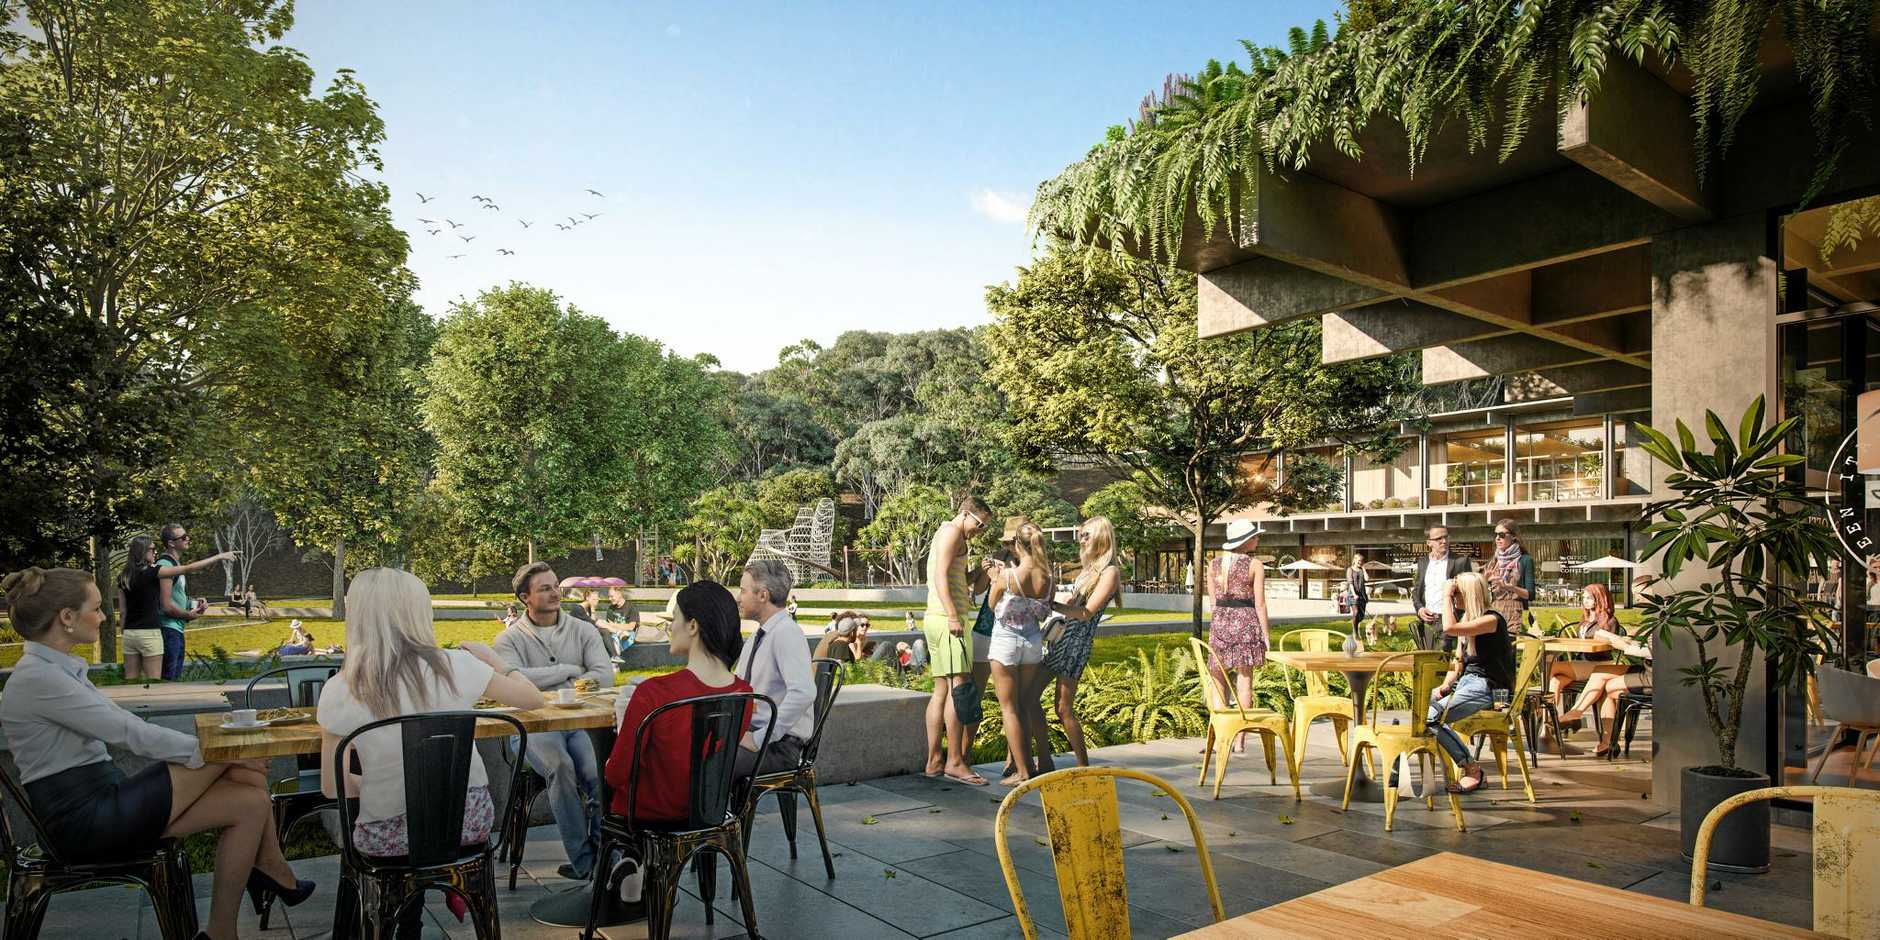 IMPRESSIONS: The view from the alfresco dining area across the 6000 sq m public park.